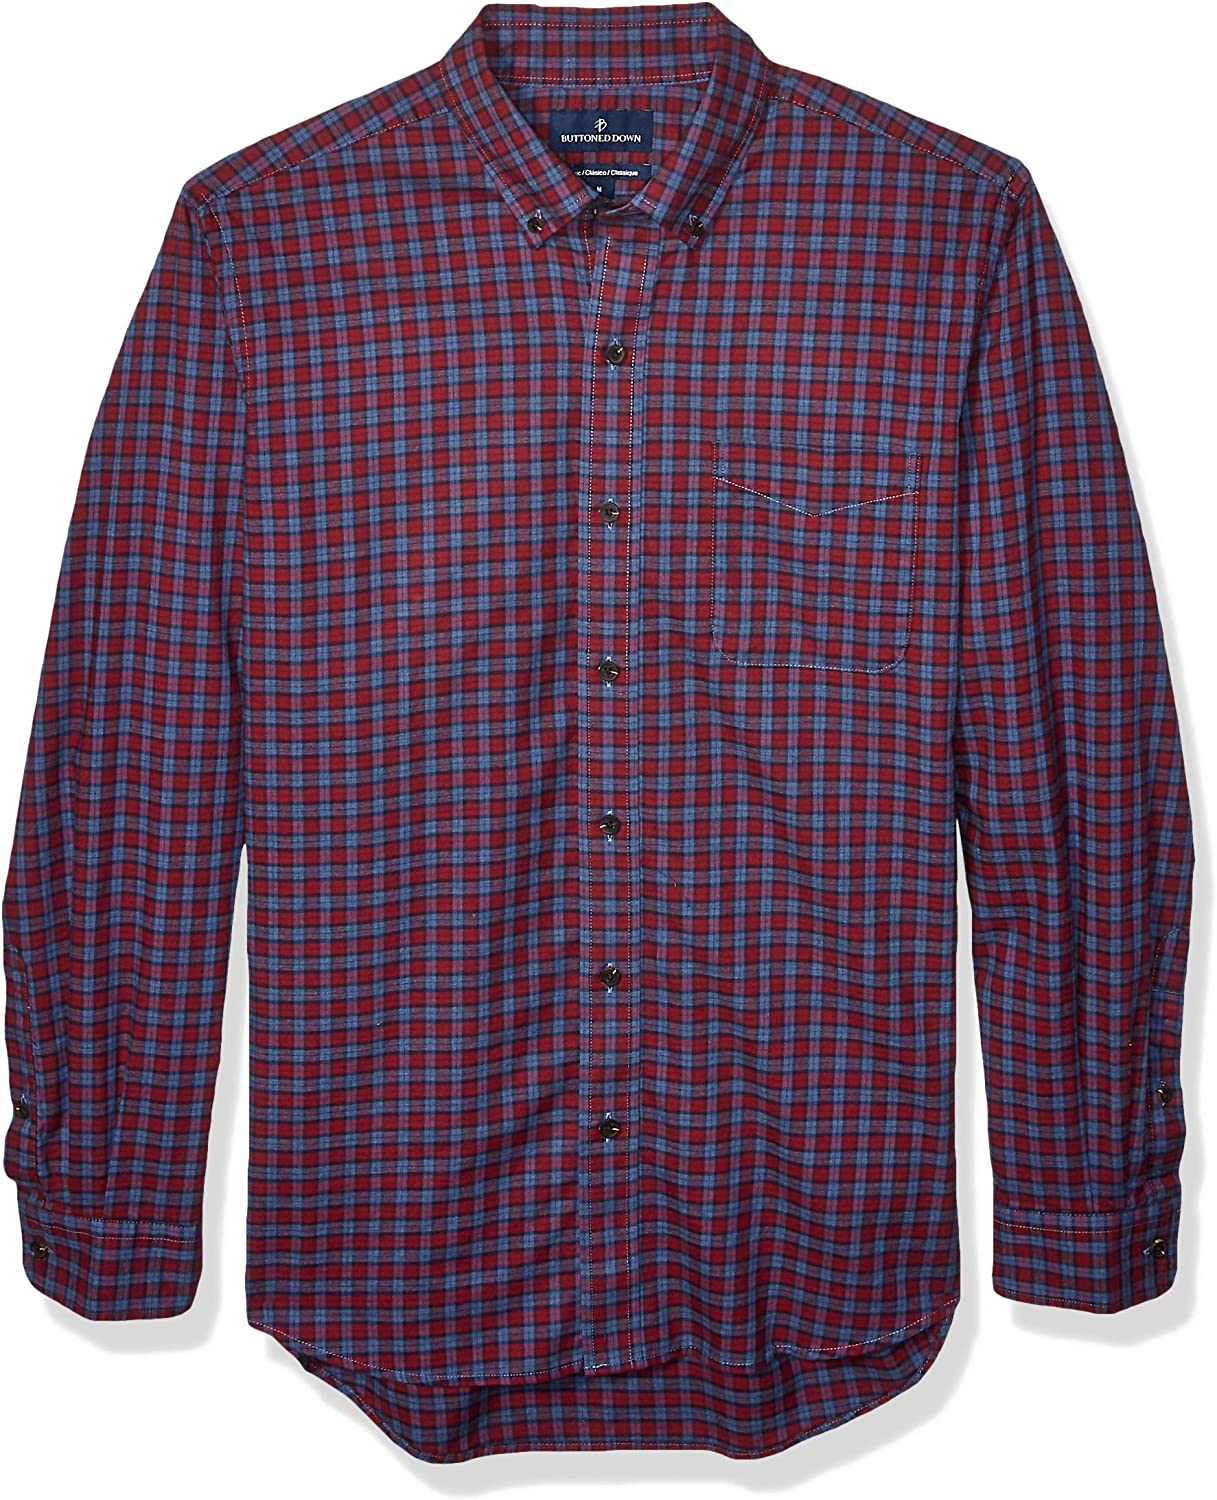 Buttoned Down Men's Classic Fit Supima Cotton Brushed Twill Plaid Sport Shirt